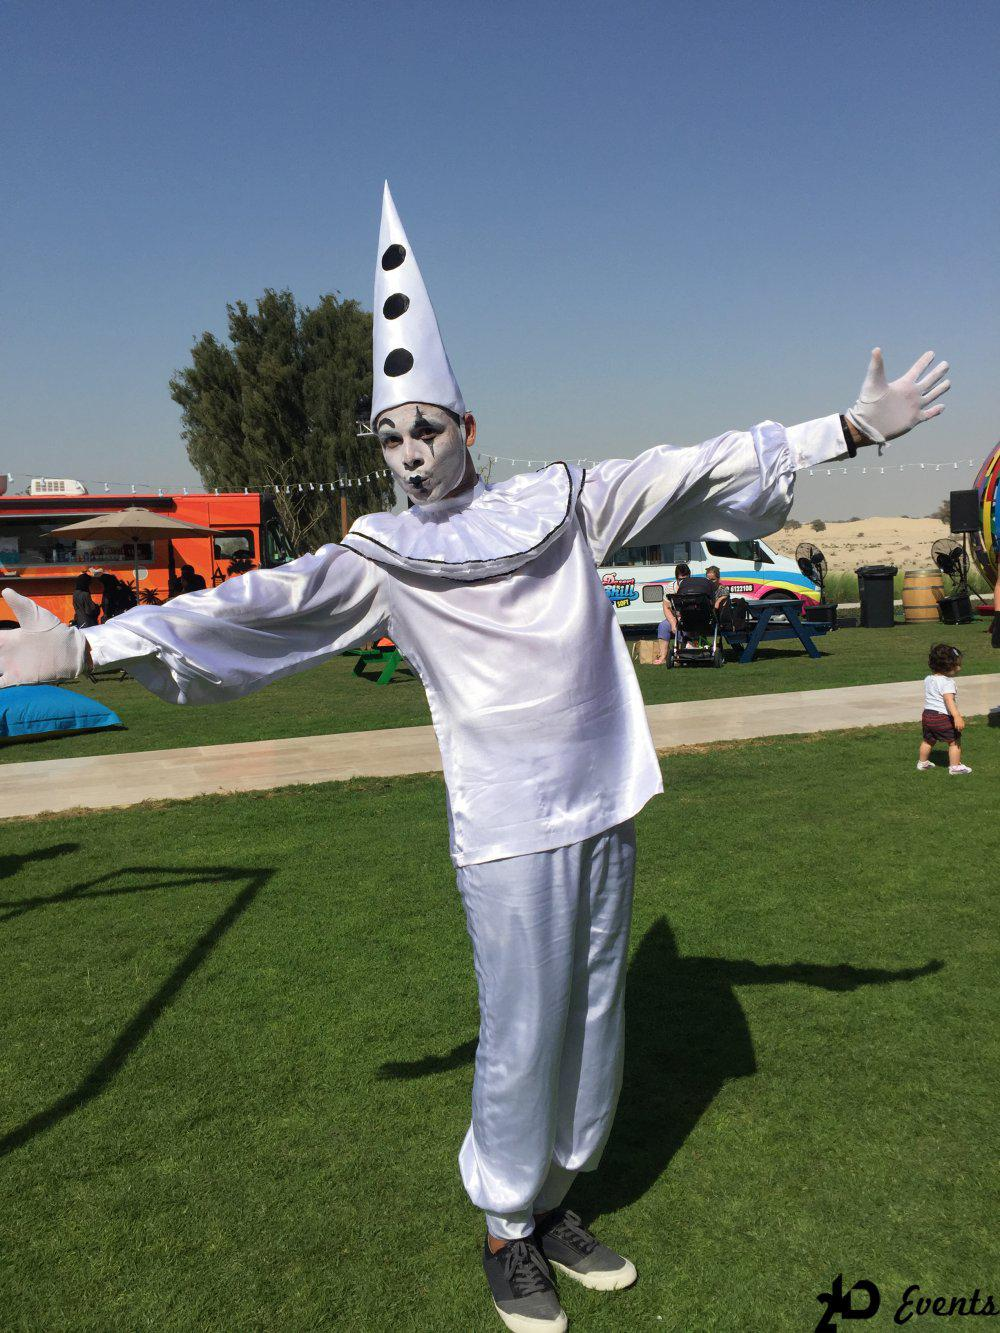 2ID - MIME ARTIST FOR THE PUBLIC EVENT